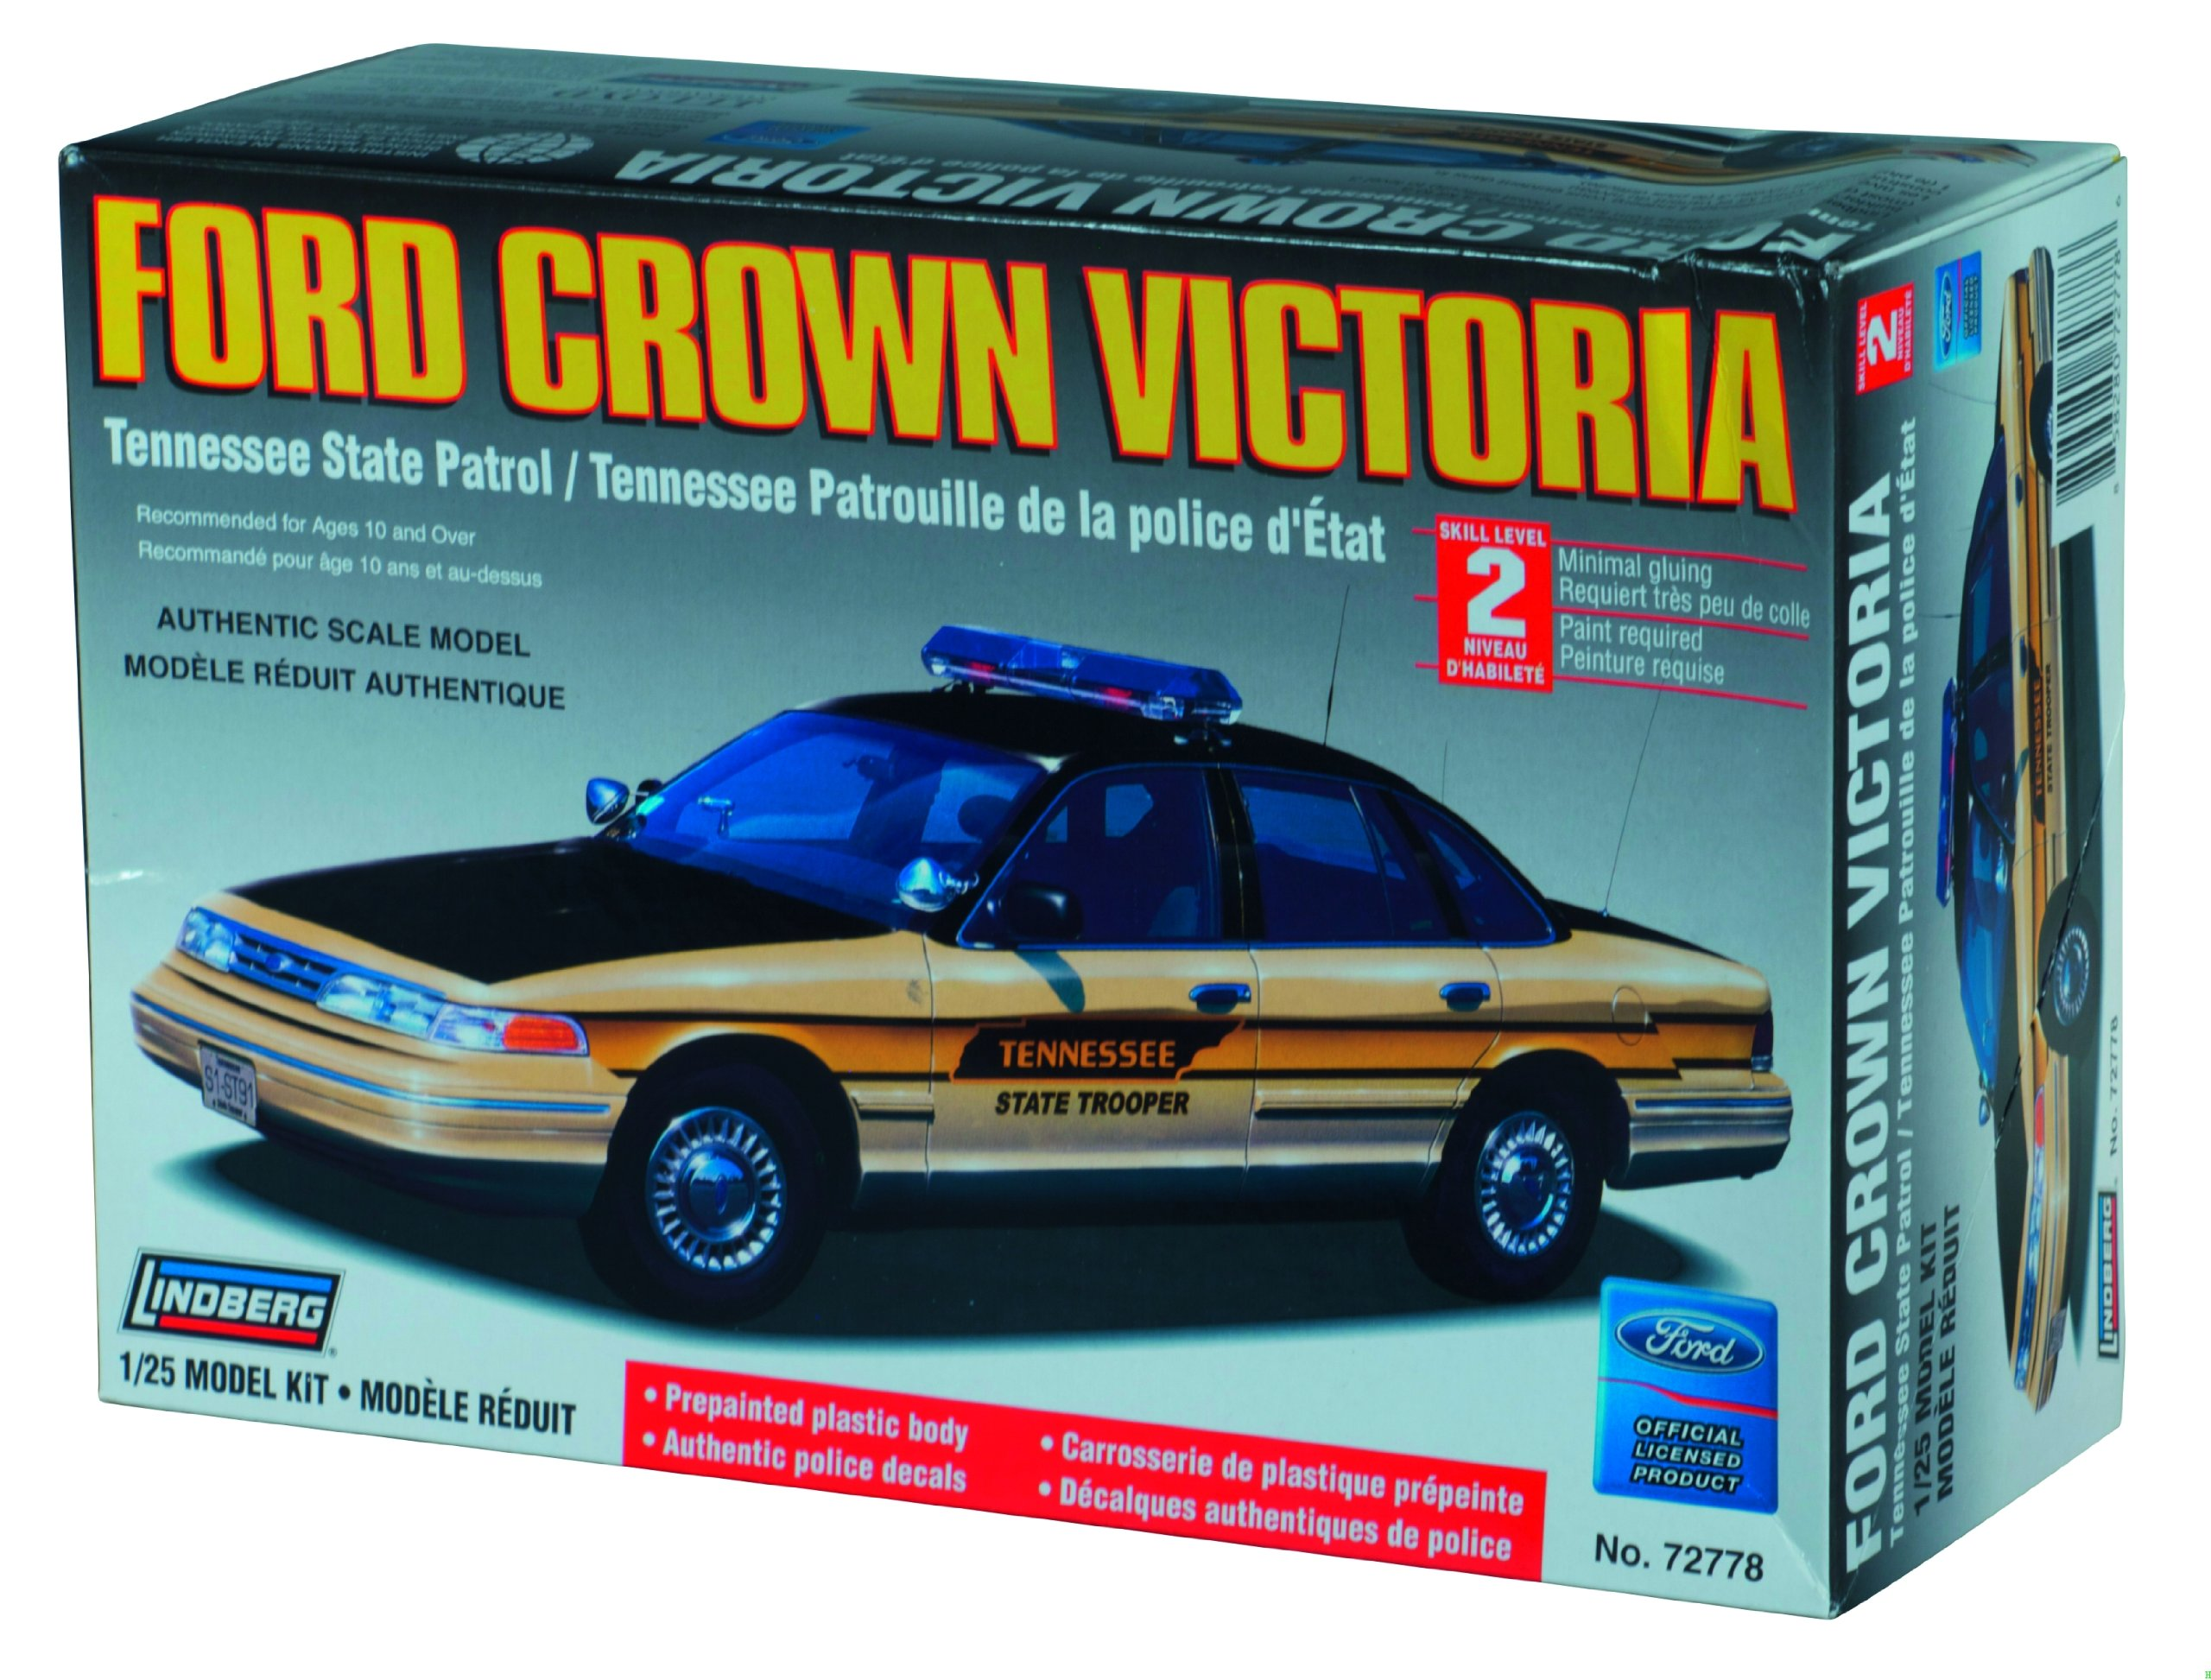 Lindberg Ford Crown Victoria Tennessee State Patrol 1/25 Scale Model Car Kit